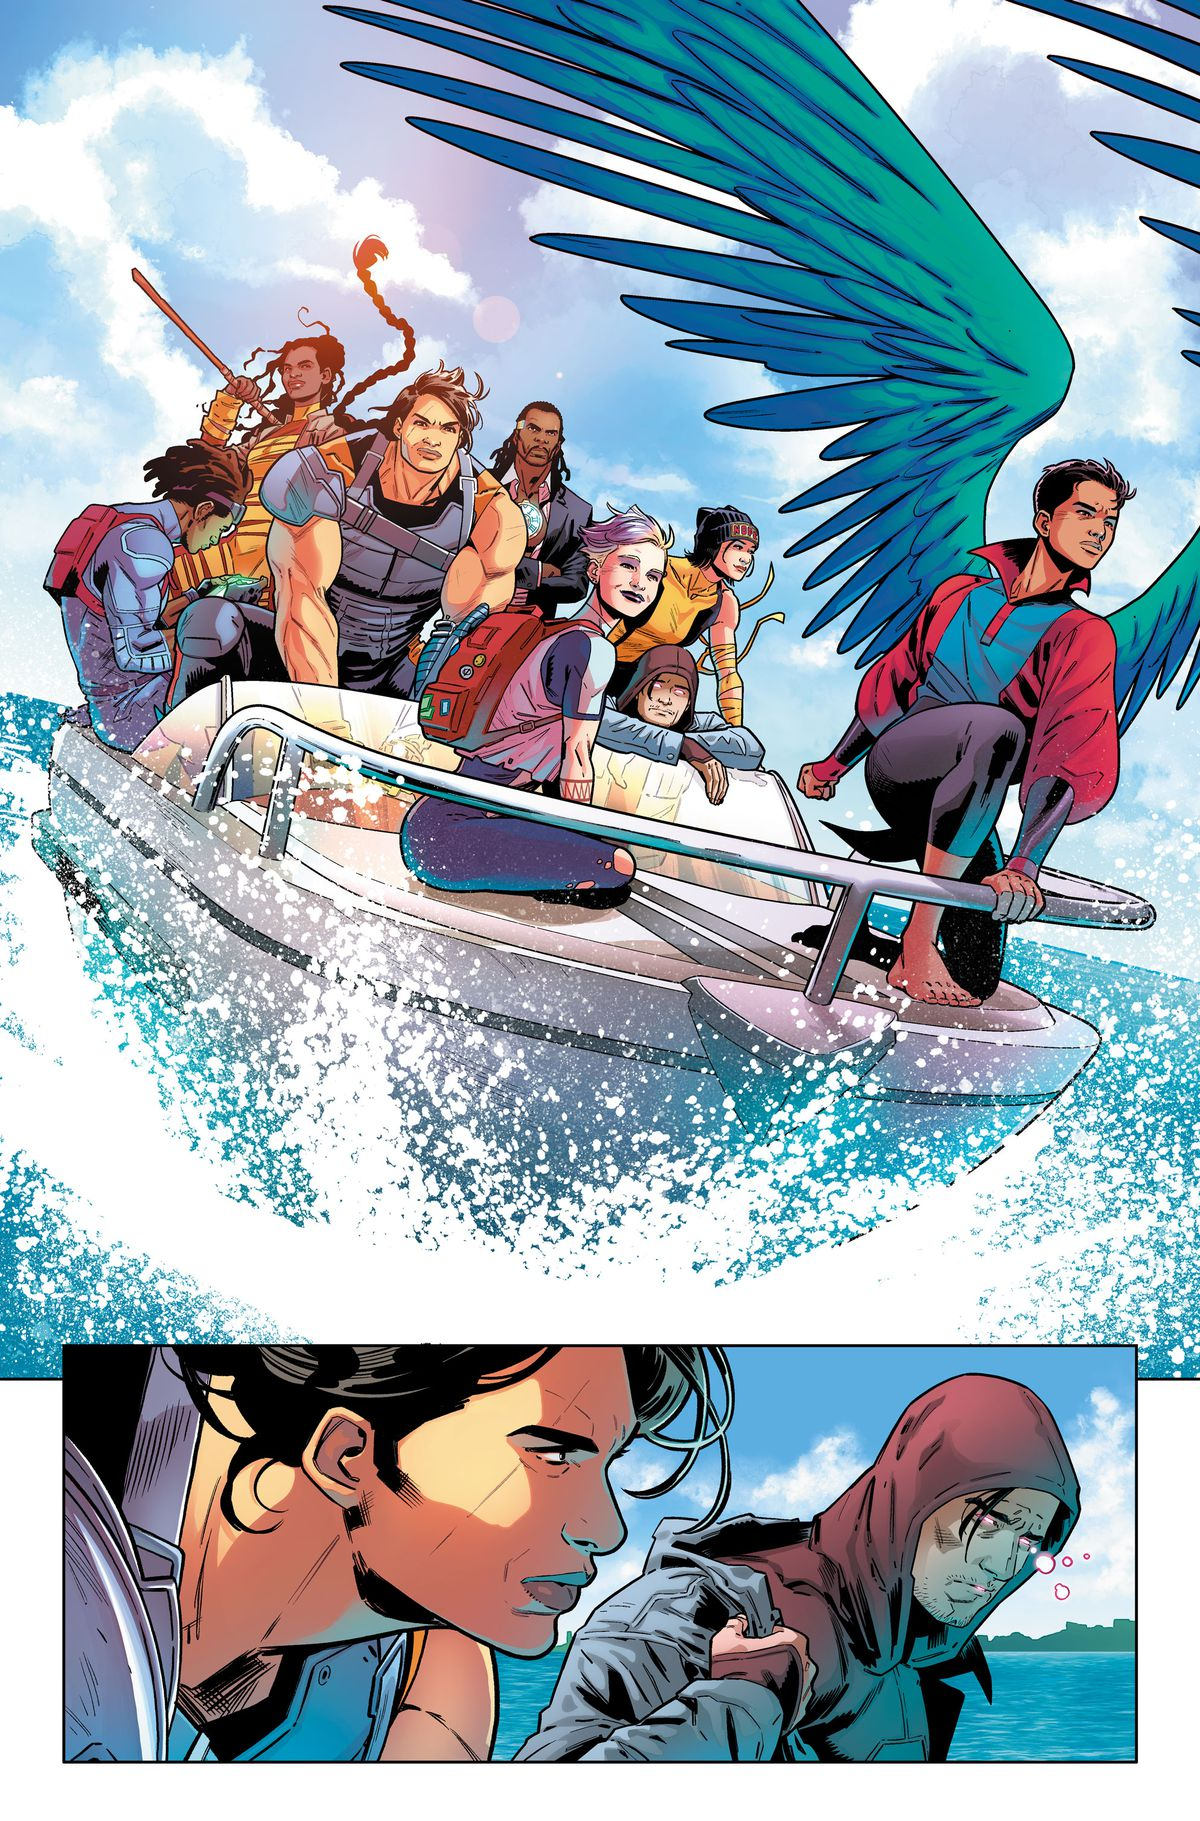 The Revolutionaries, consisting of (LtR) Jog, Thylacine, Osita, Deadly Six, Blink, T.N.Teen, Chaos Kitten, and the Aerie, ride a speedboat, in an unlettered page from Suicide Squad #1, DC Comics (2019).